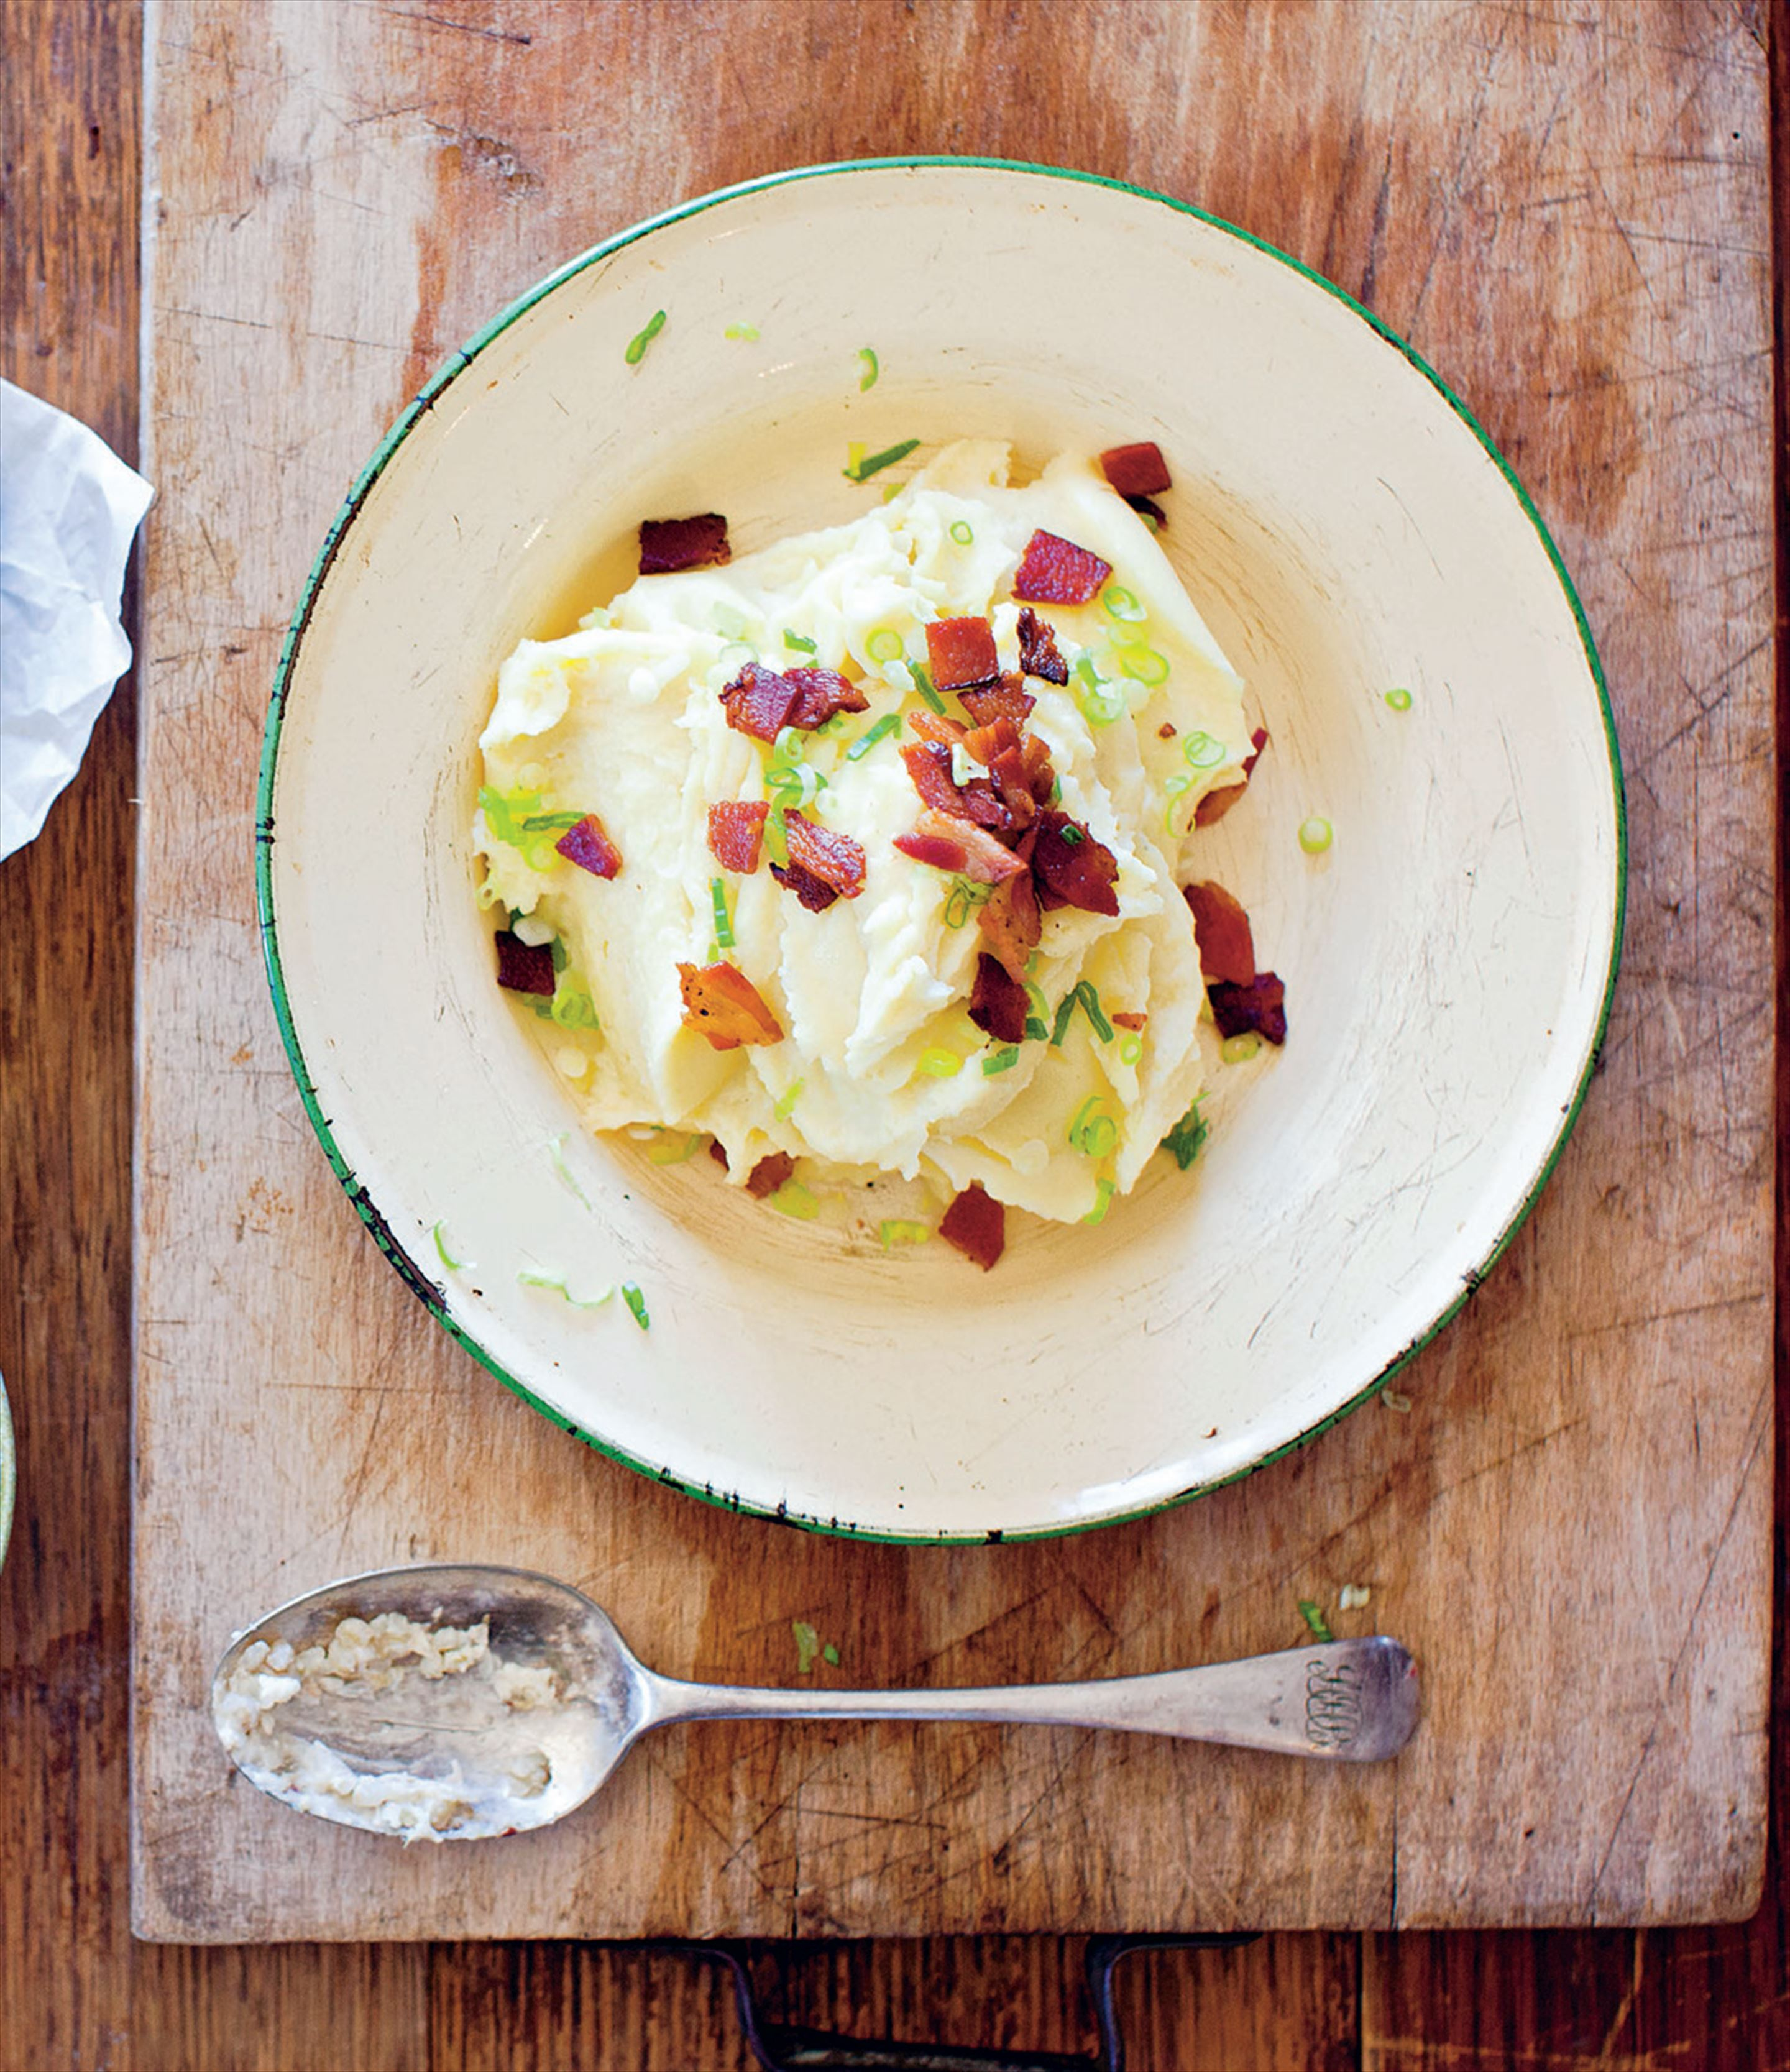 Mashed potato with bacon and spring onion